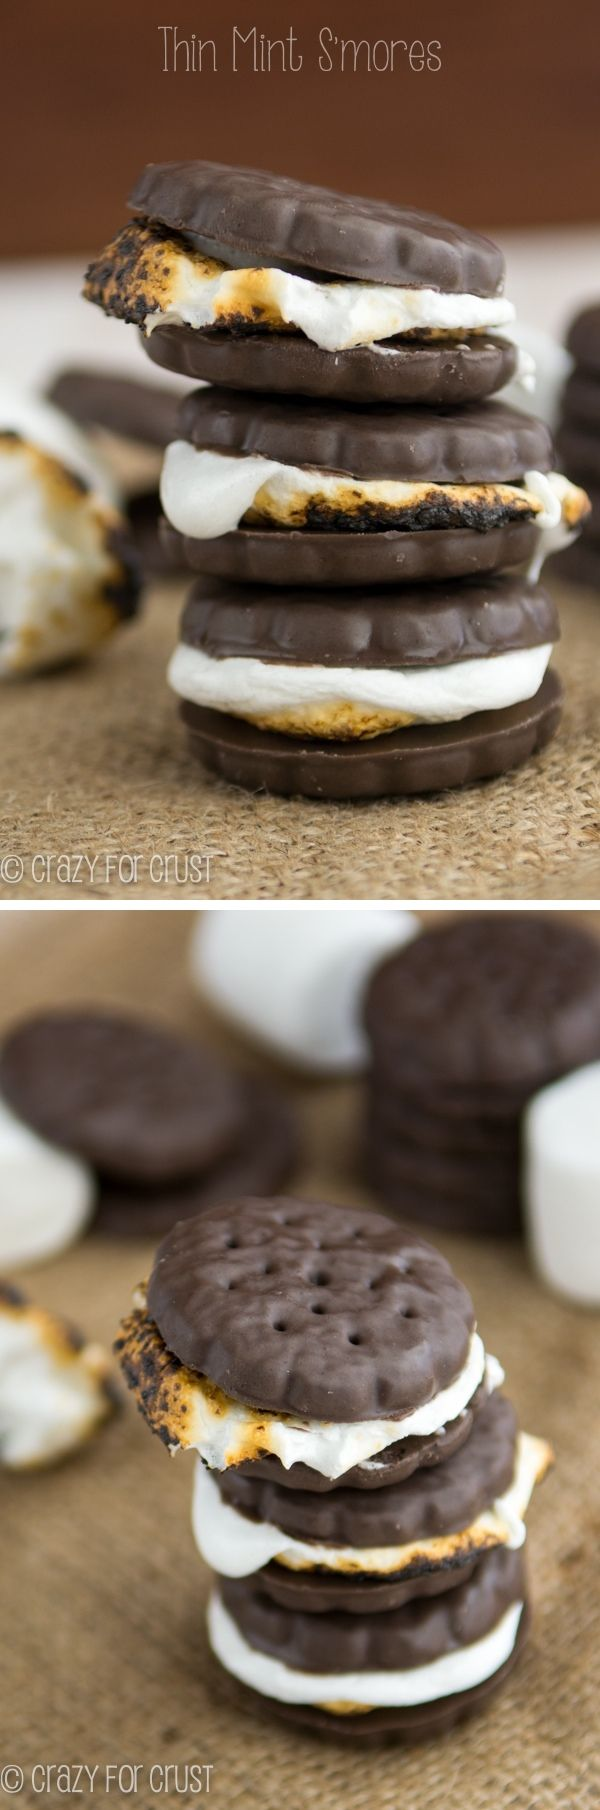 Thin Mint S'mores | crazyforcrust.com | The easiest recipe ever!